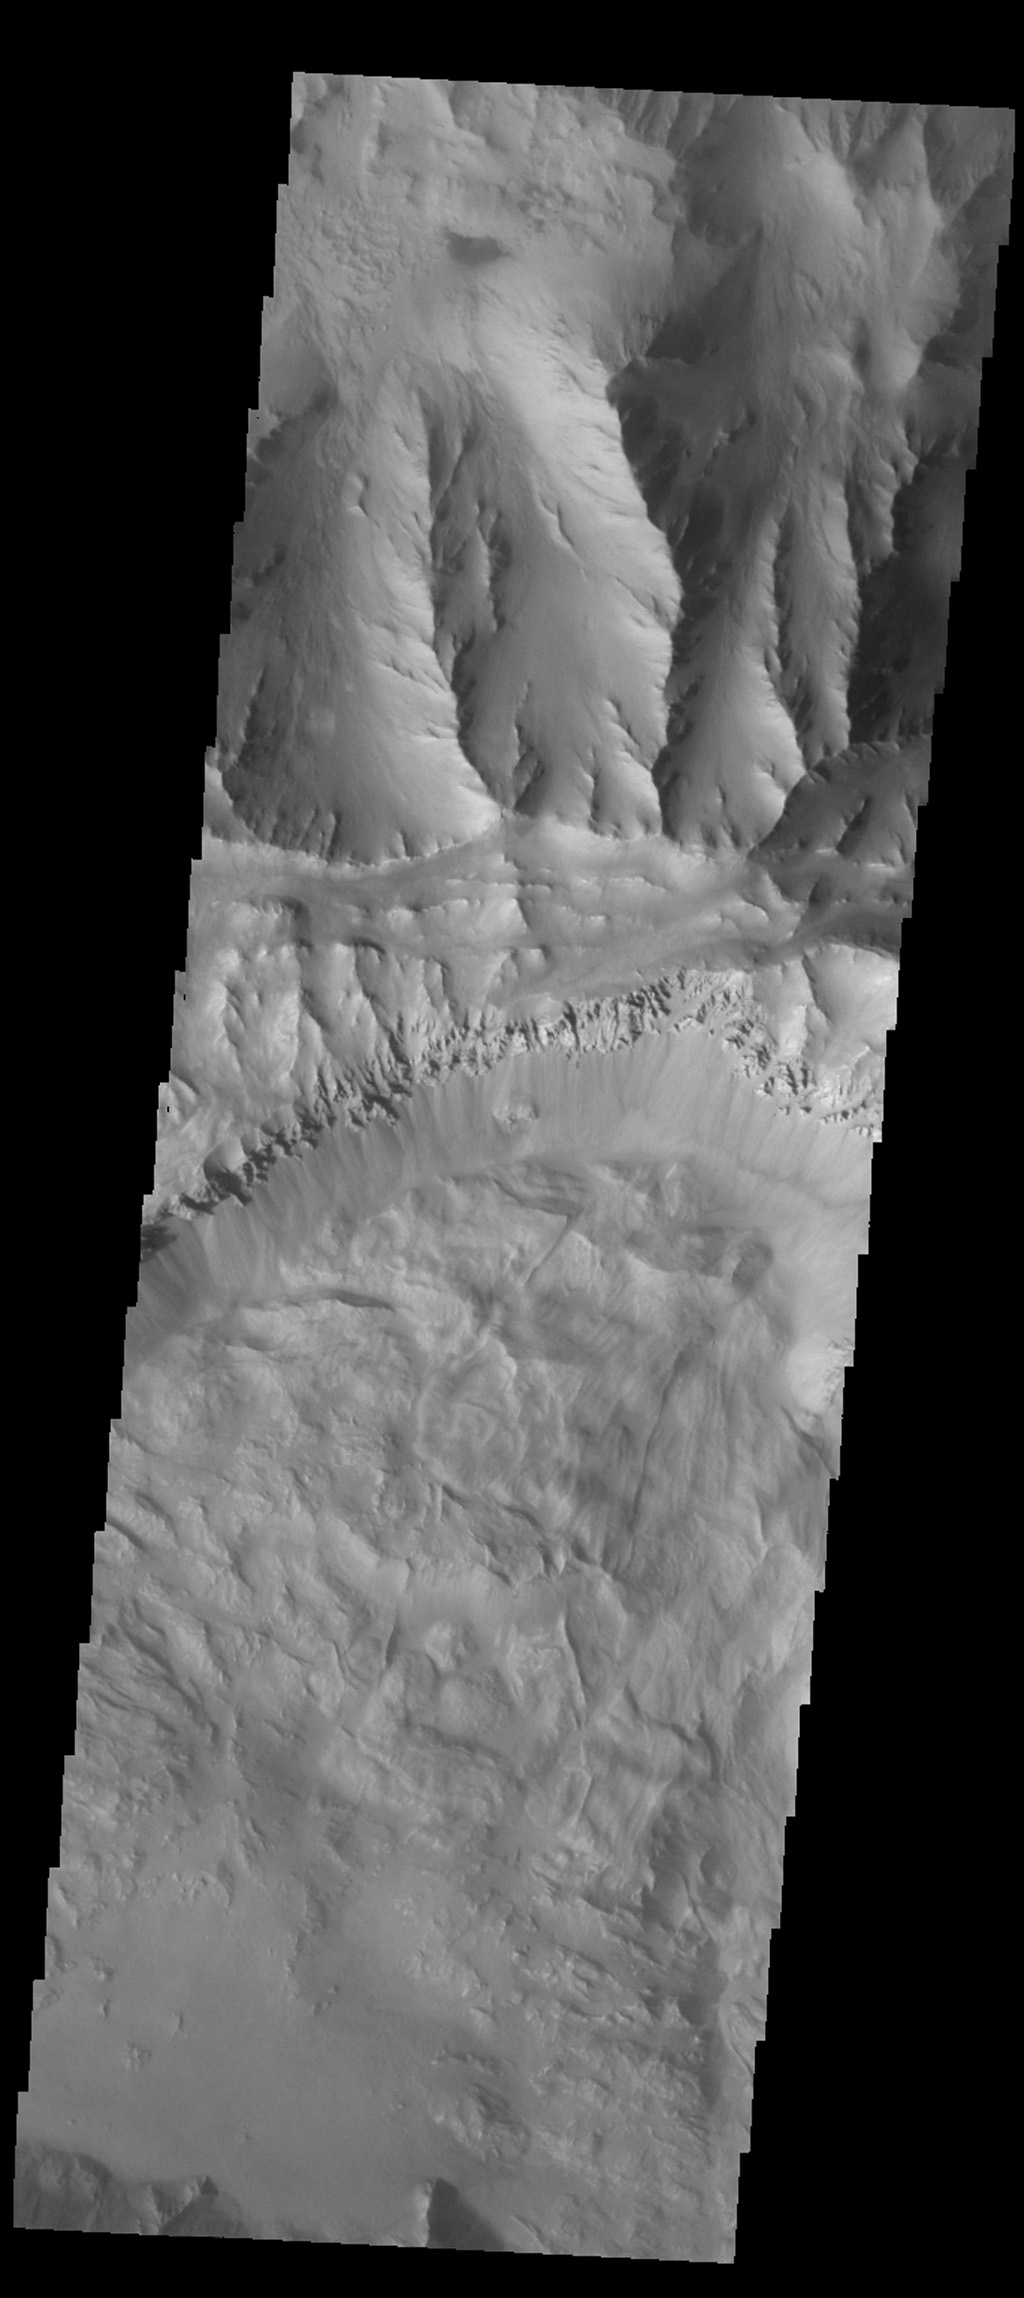 A large landslide deposit fills the bottom part of this image of Coprates Chasma captured by NASA's 2001 Mars Odyssey spacecraft.